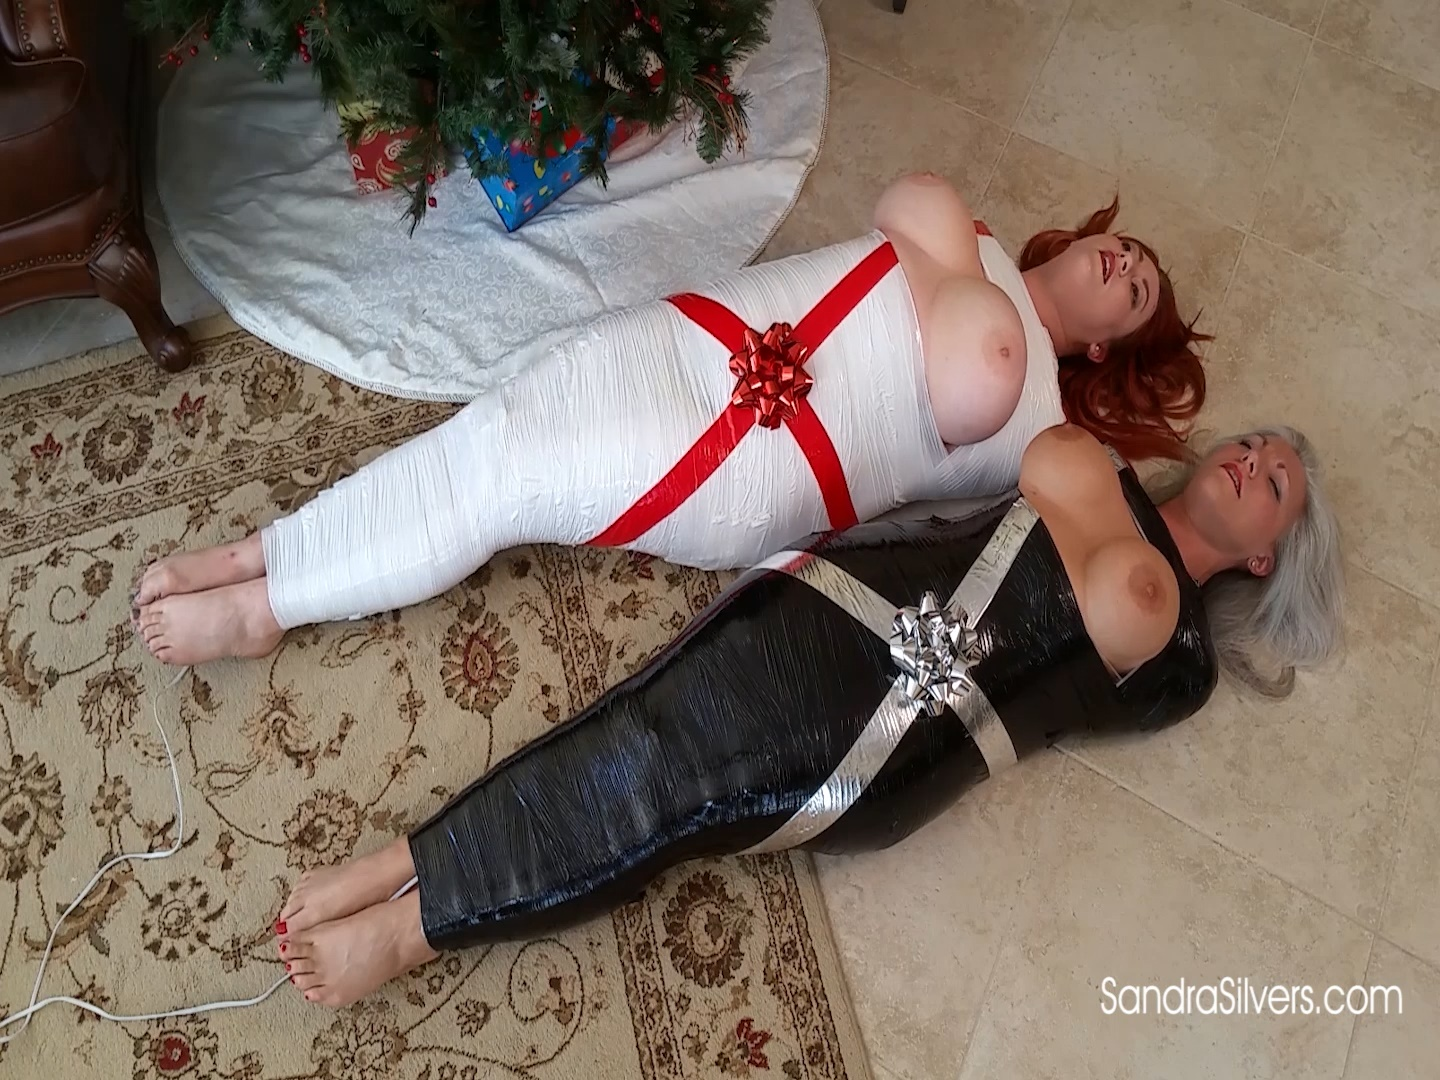 A pair of Mummified_Buxom Broads Left Under Your Christmas Tree